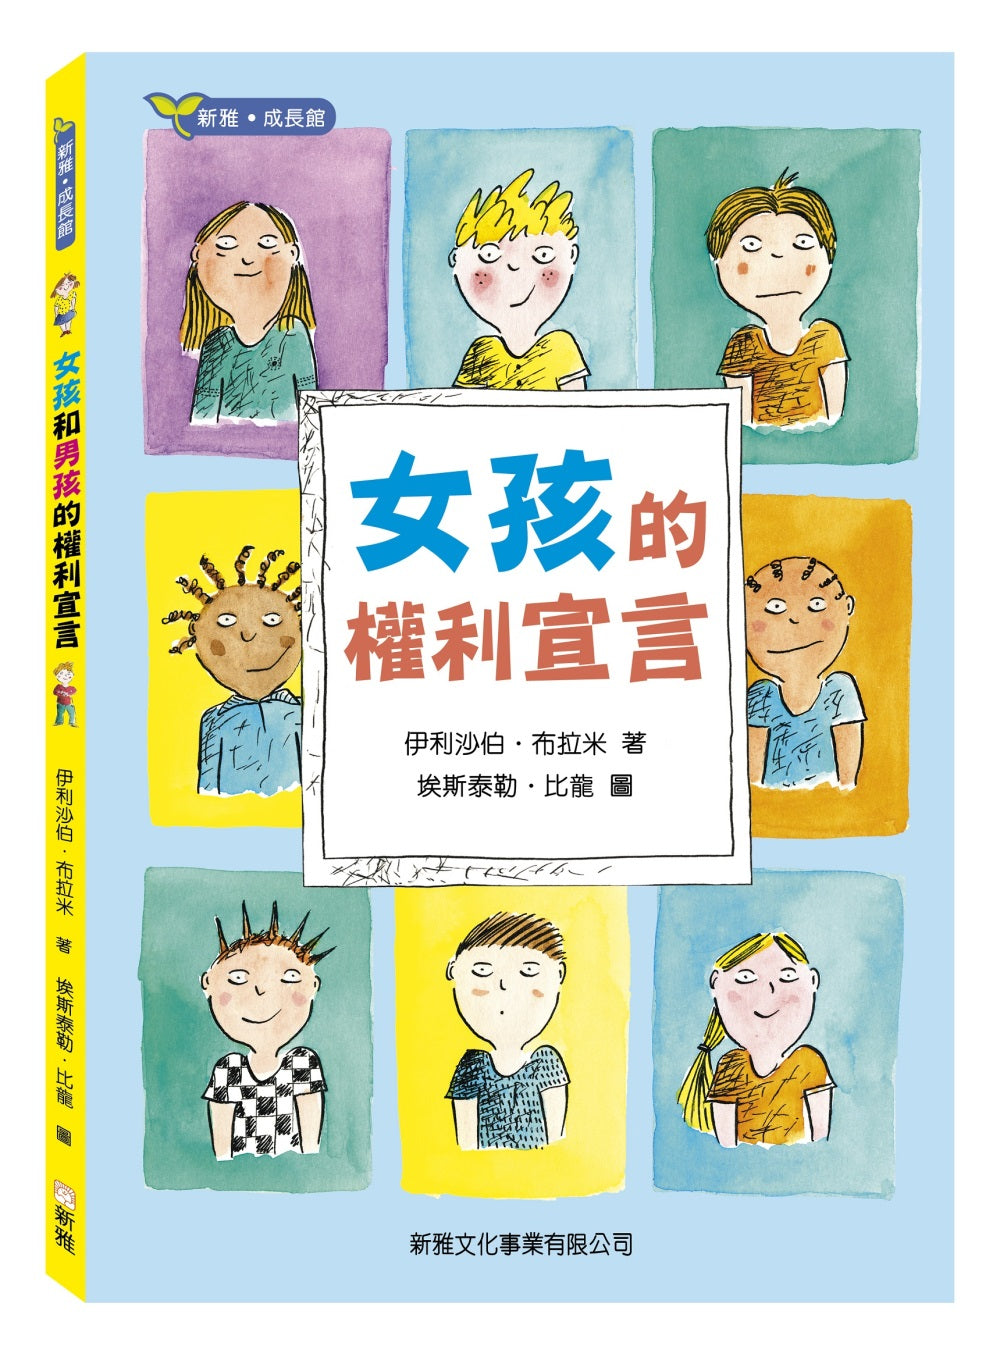 Declaration of the Rights of Boys and Girls • 女孩和男孩的權利宣言